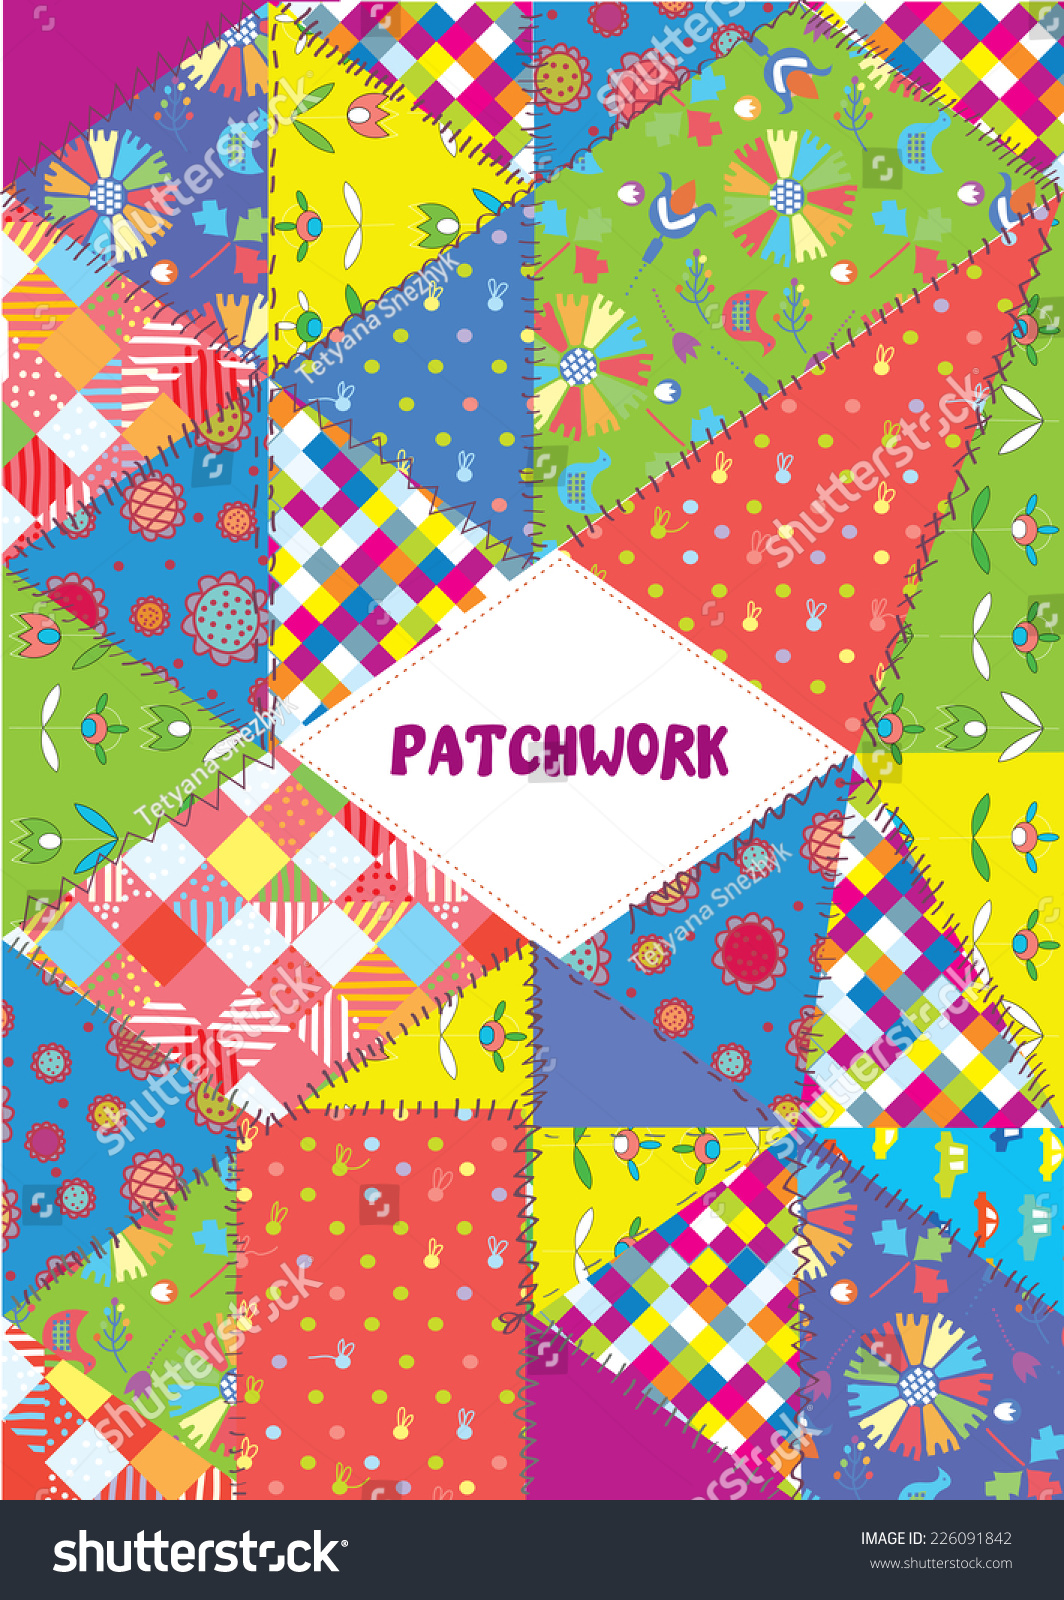 Patchwork Book Cover Pattern : Patchwork cover placard funny design patterns stock vector